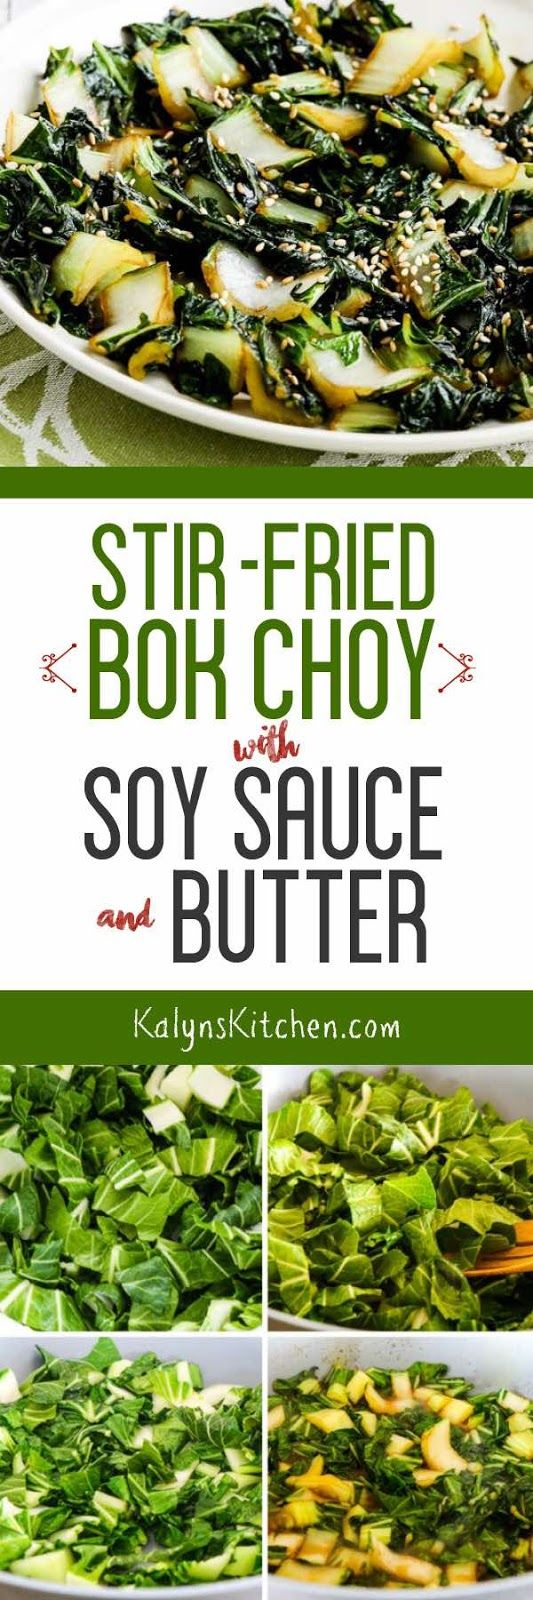 We went absolutely NUTS ove this Stir-Fried Bok Choy with Soy Sauce and Butter when we tested the recipe; this is so delicious and it's low-carb, low-glycemic, dairy-free, and South Beach Diet friendly. If you use gluten-free Oyster Sauce and Soy Sauce it can easily be gluten-free. [found on KalynsKitchen.com] #BokChoy #StirFriedBokChoy